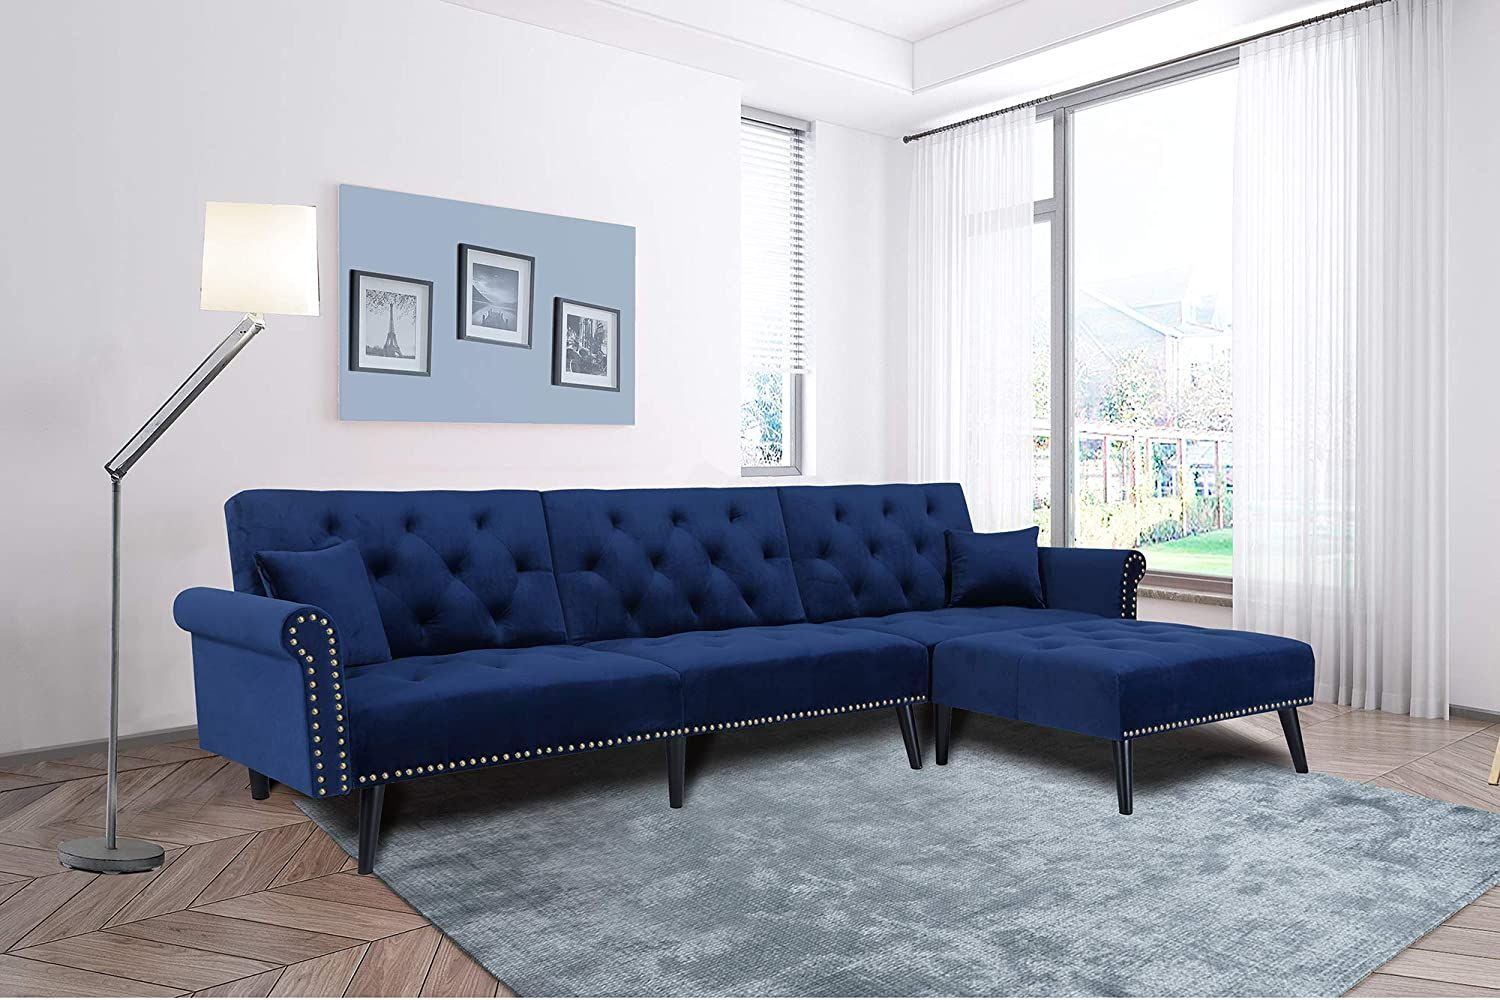 Navy Blue Sectional Sofa Sleeper Bed Julyfox 900lb Heavy Duty115 Inch Velvet Futon W Chaise Recliner In 2020 Futon Sofa Small Living Rooms Sofa Bed Set